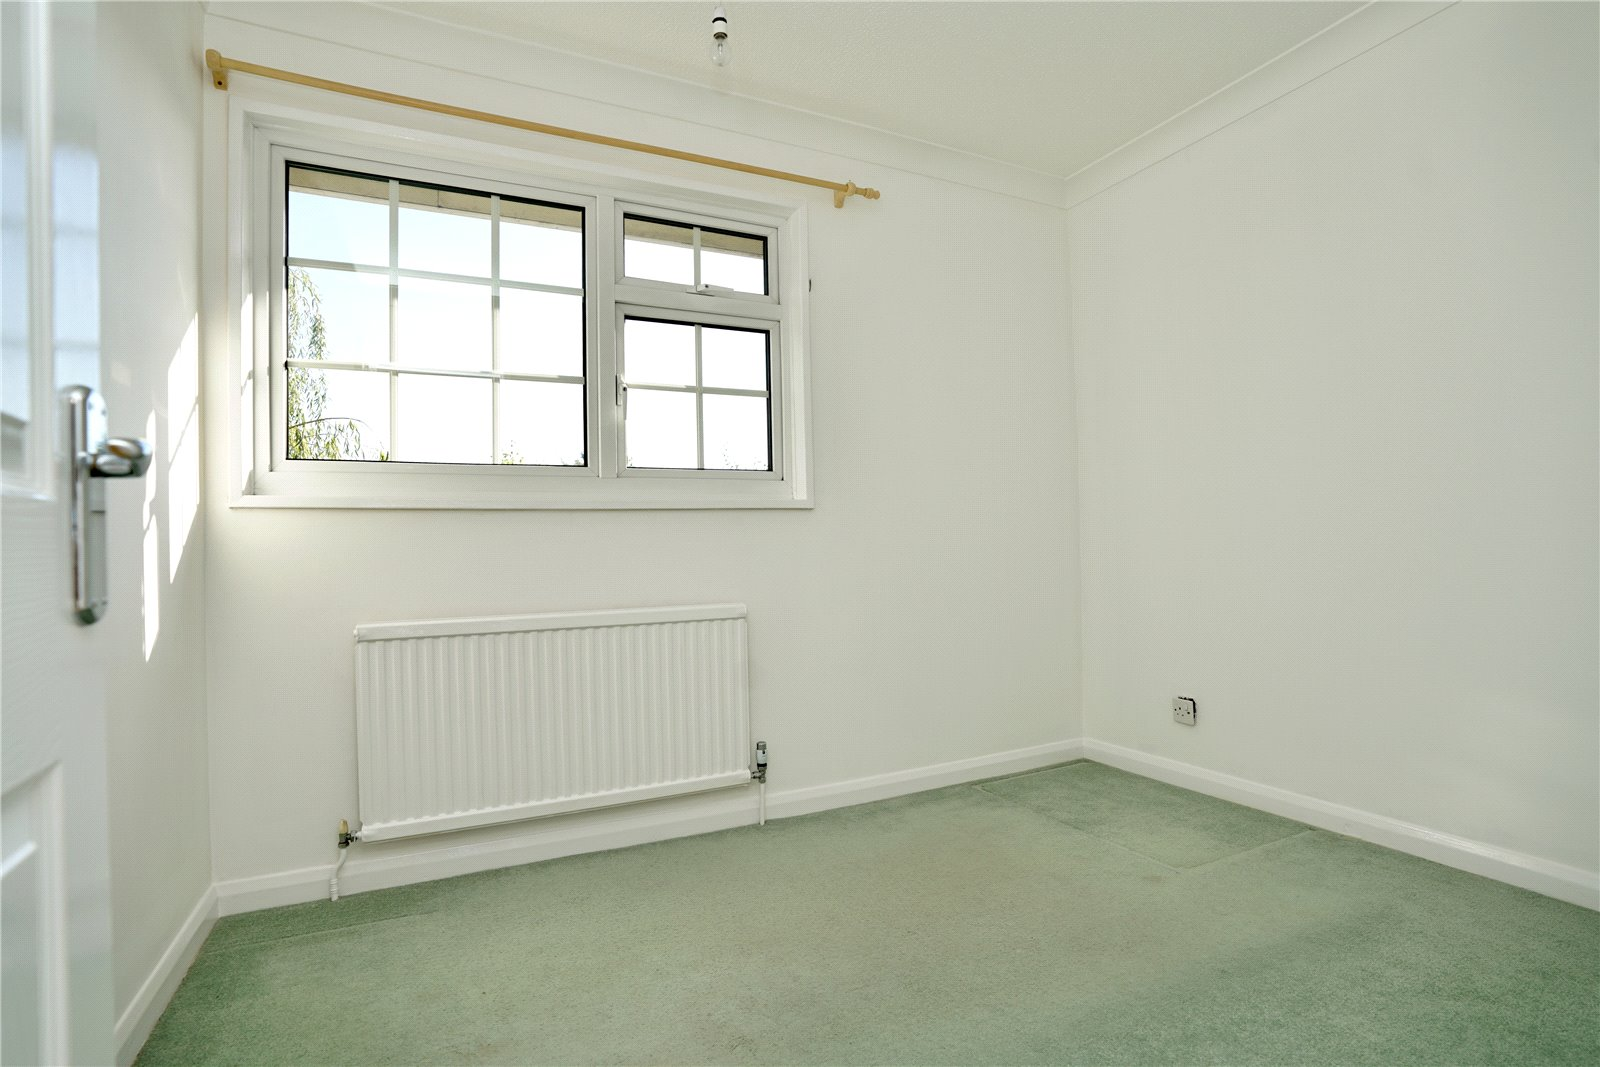 4 bed house for sale in All Hallows, Sandy 9